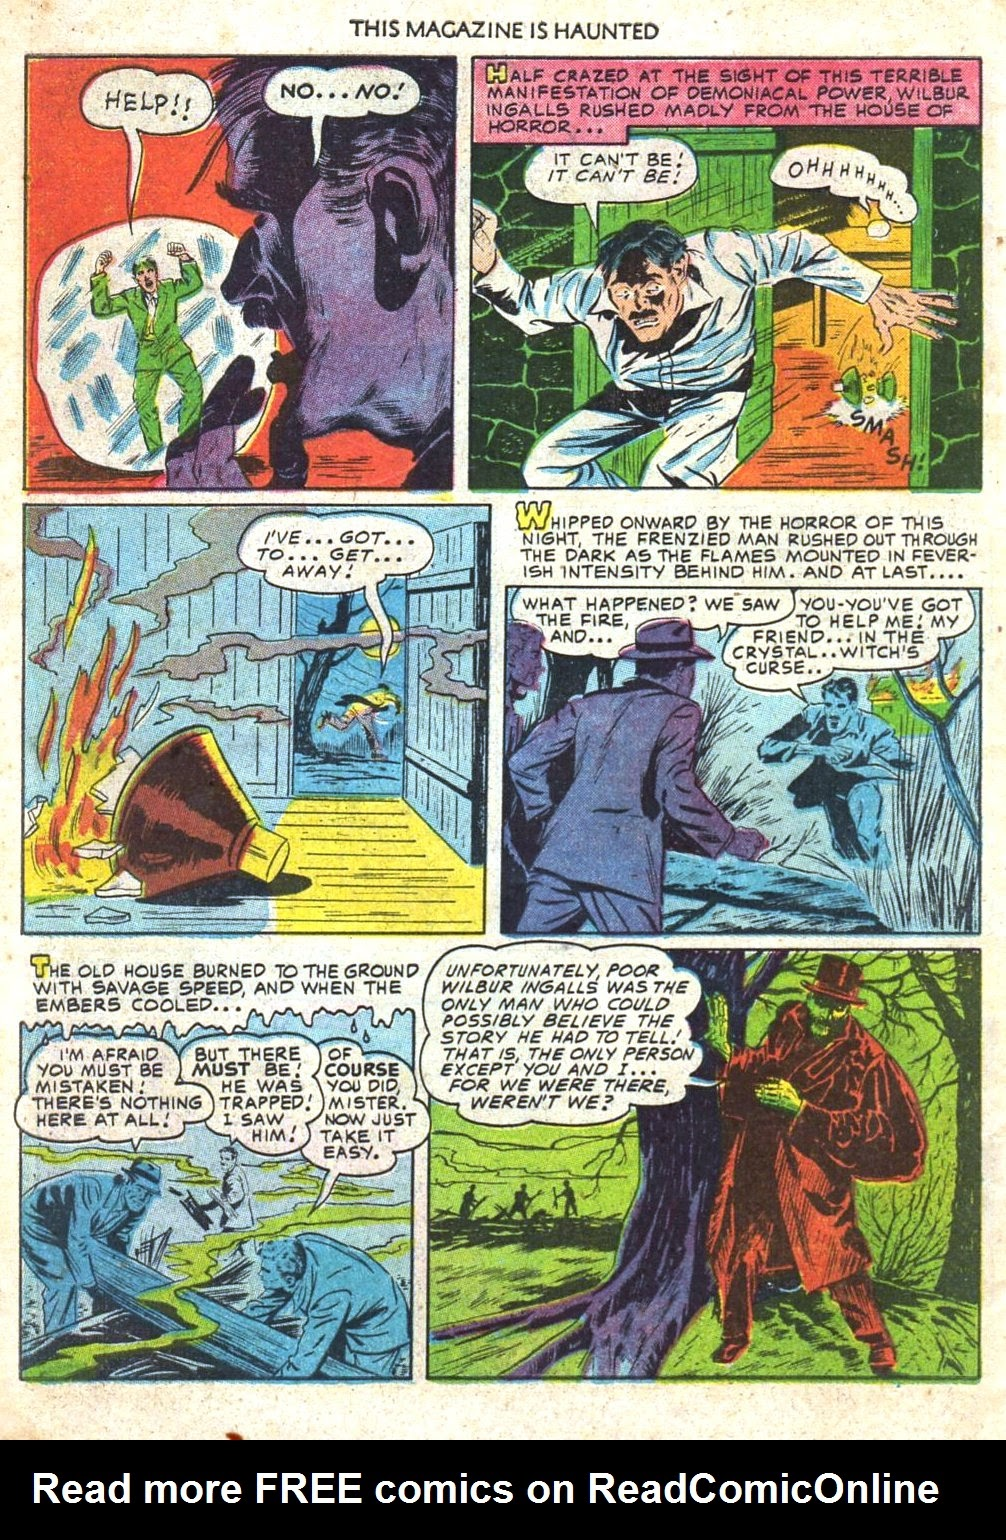 Read online This Magazine Is Haunted comic -  Issue #6 - 34